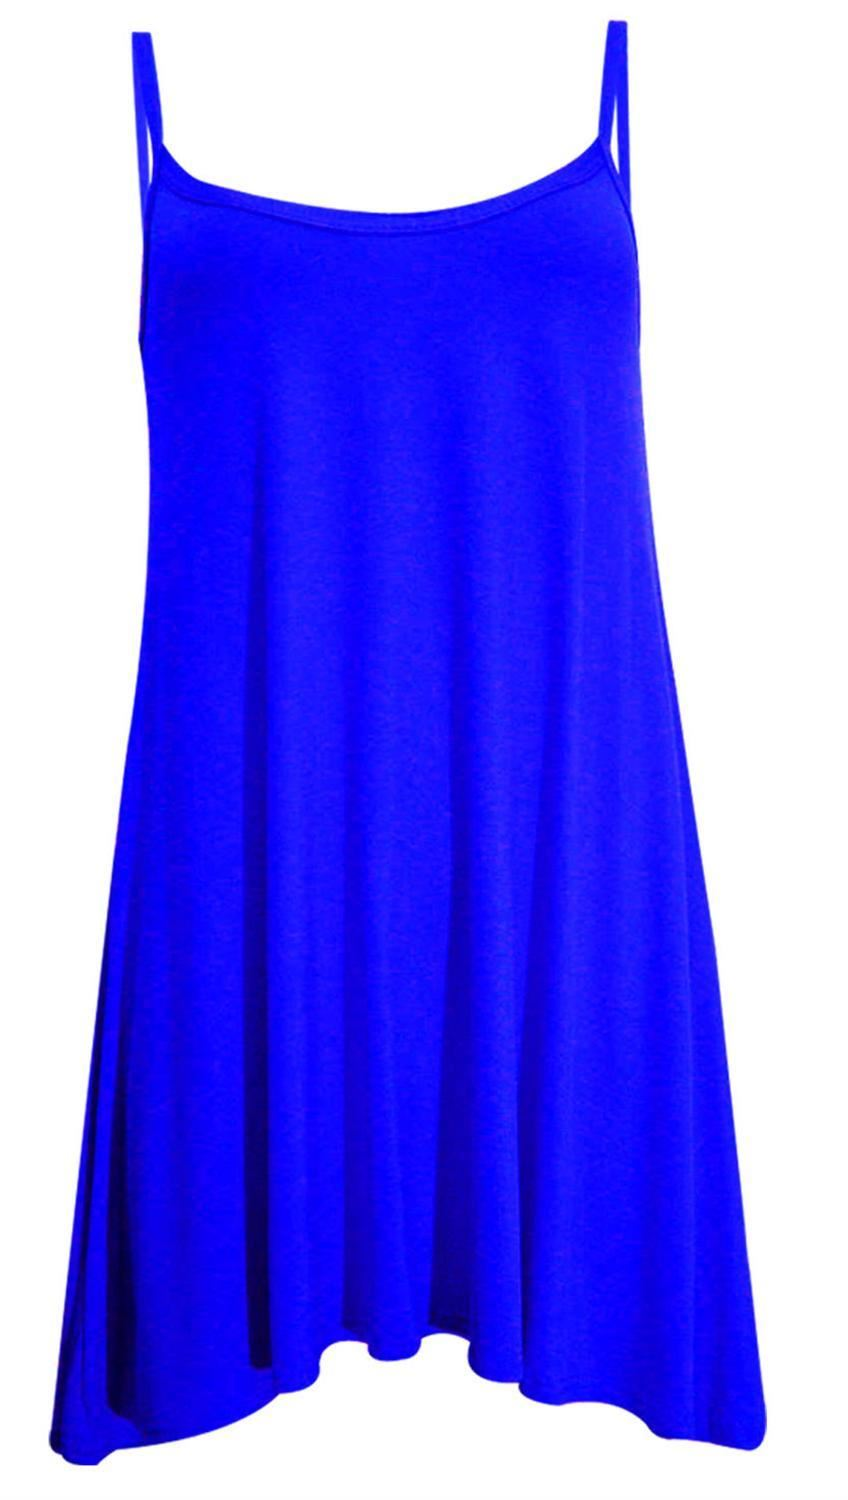 ... about New Womens Plus Size Cami Strappy Plain Tops Long Swing Dress